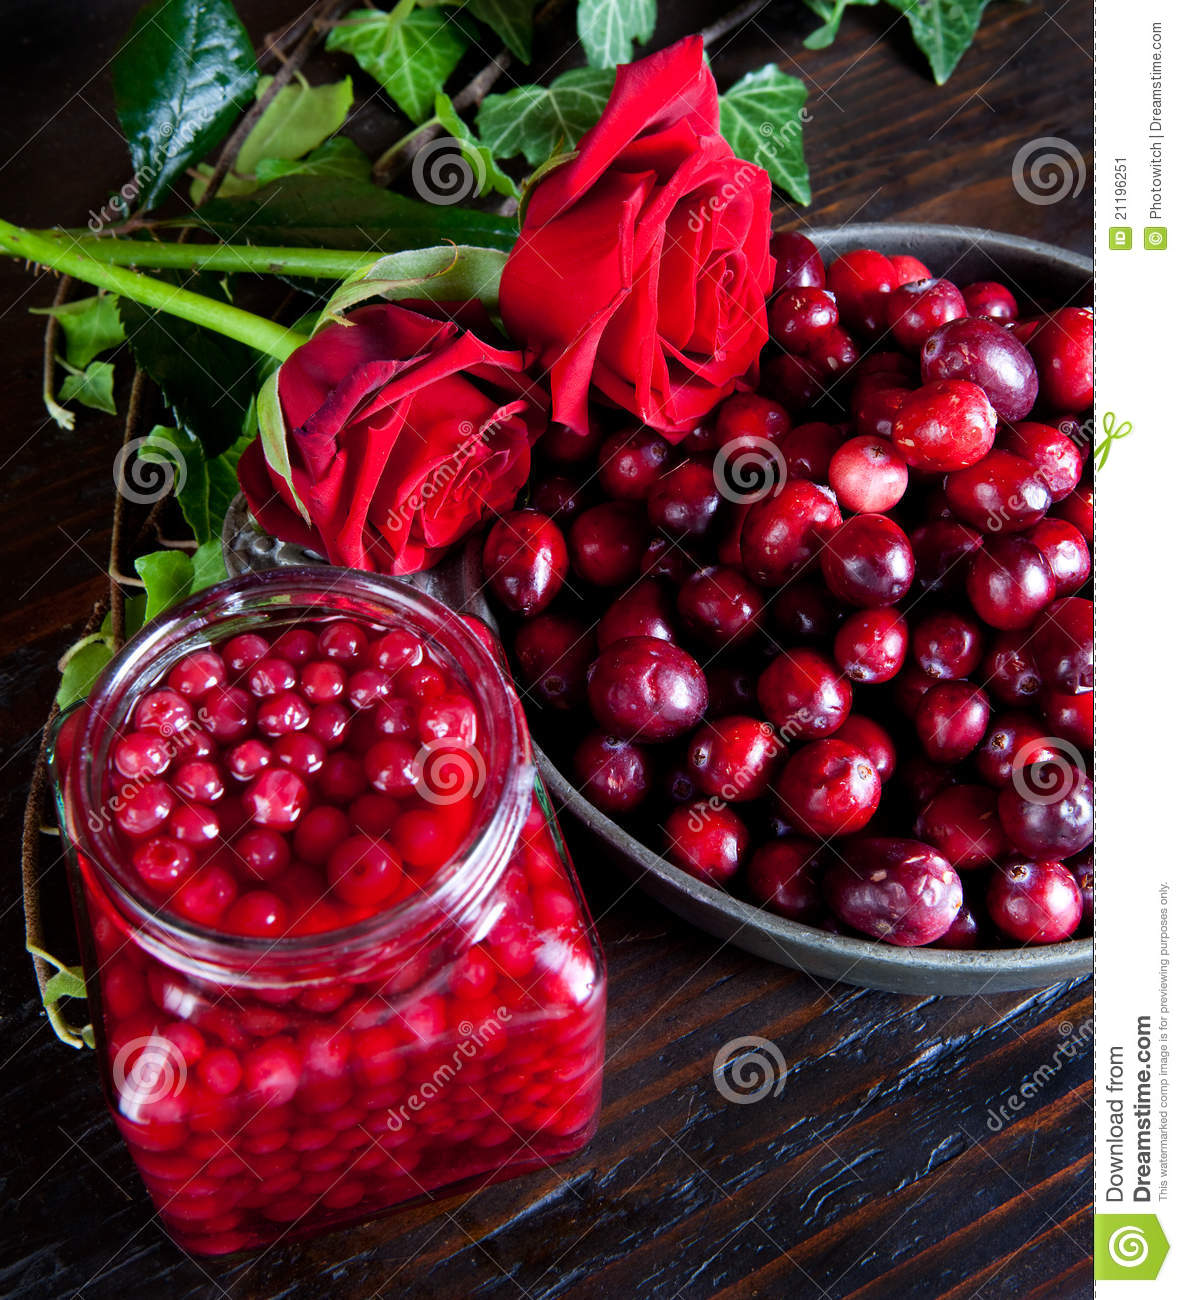 Cranberries and roses